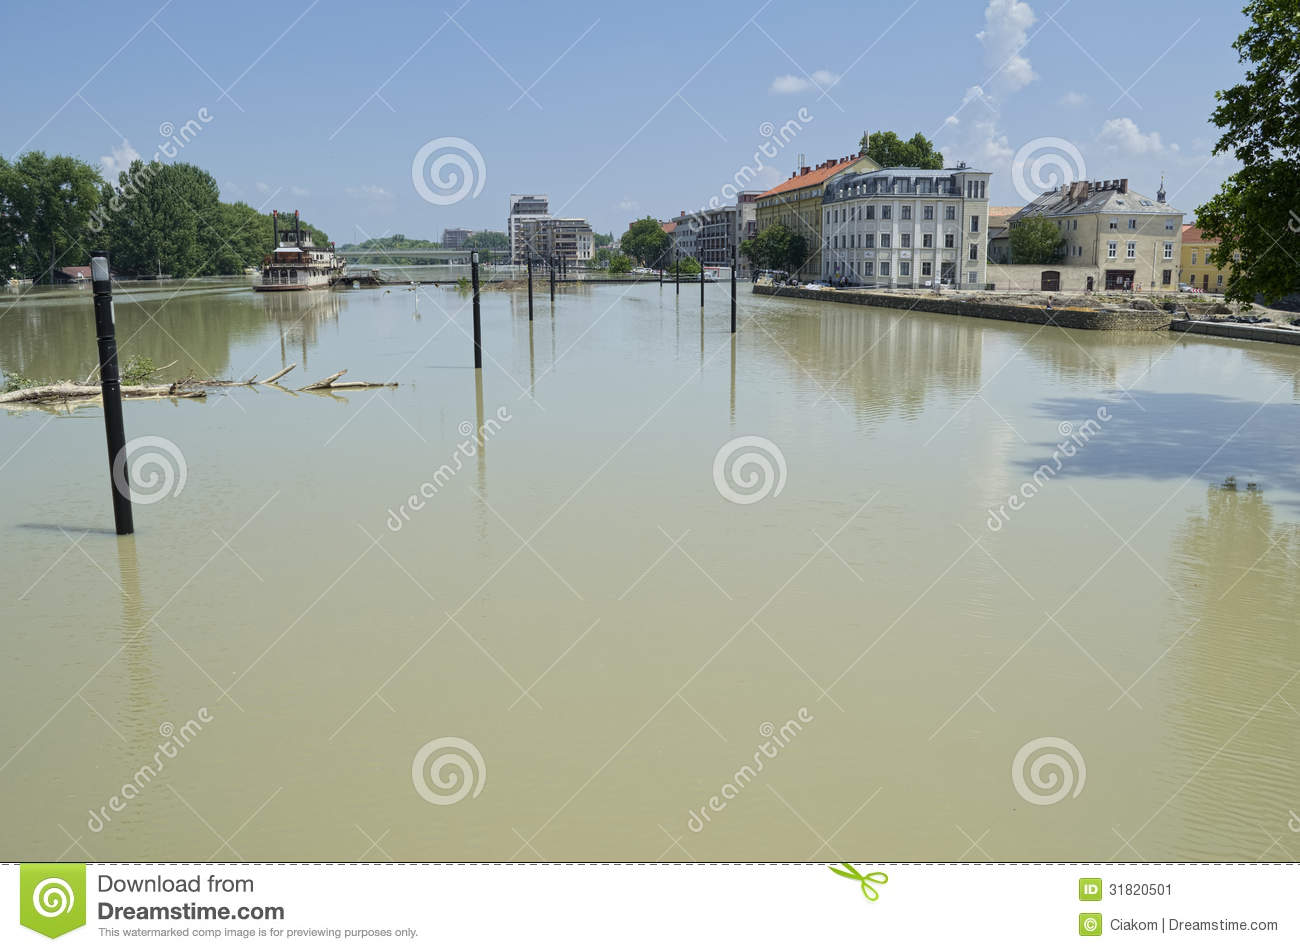 Flooding Danube River In Gyor Downtown Stock Image Image